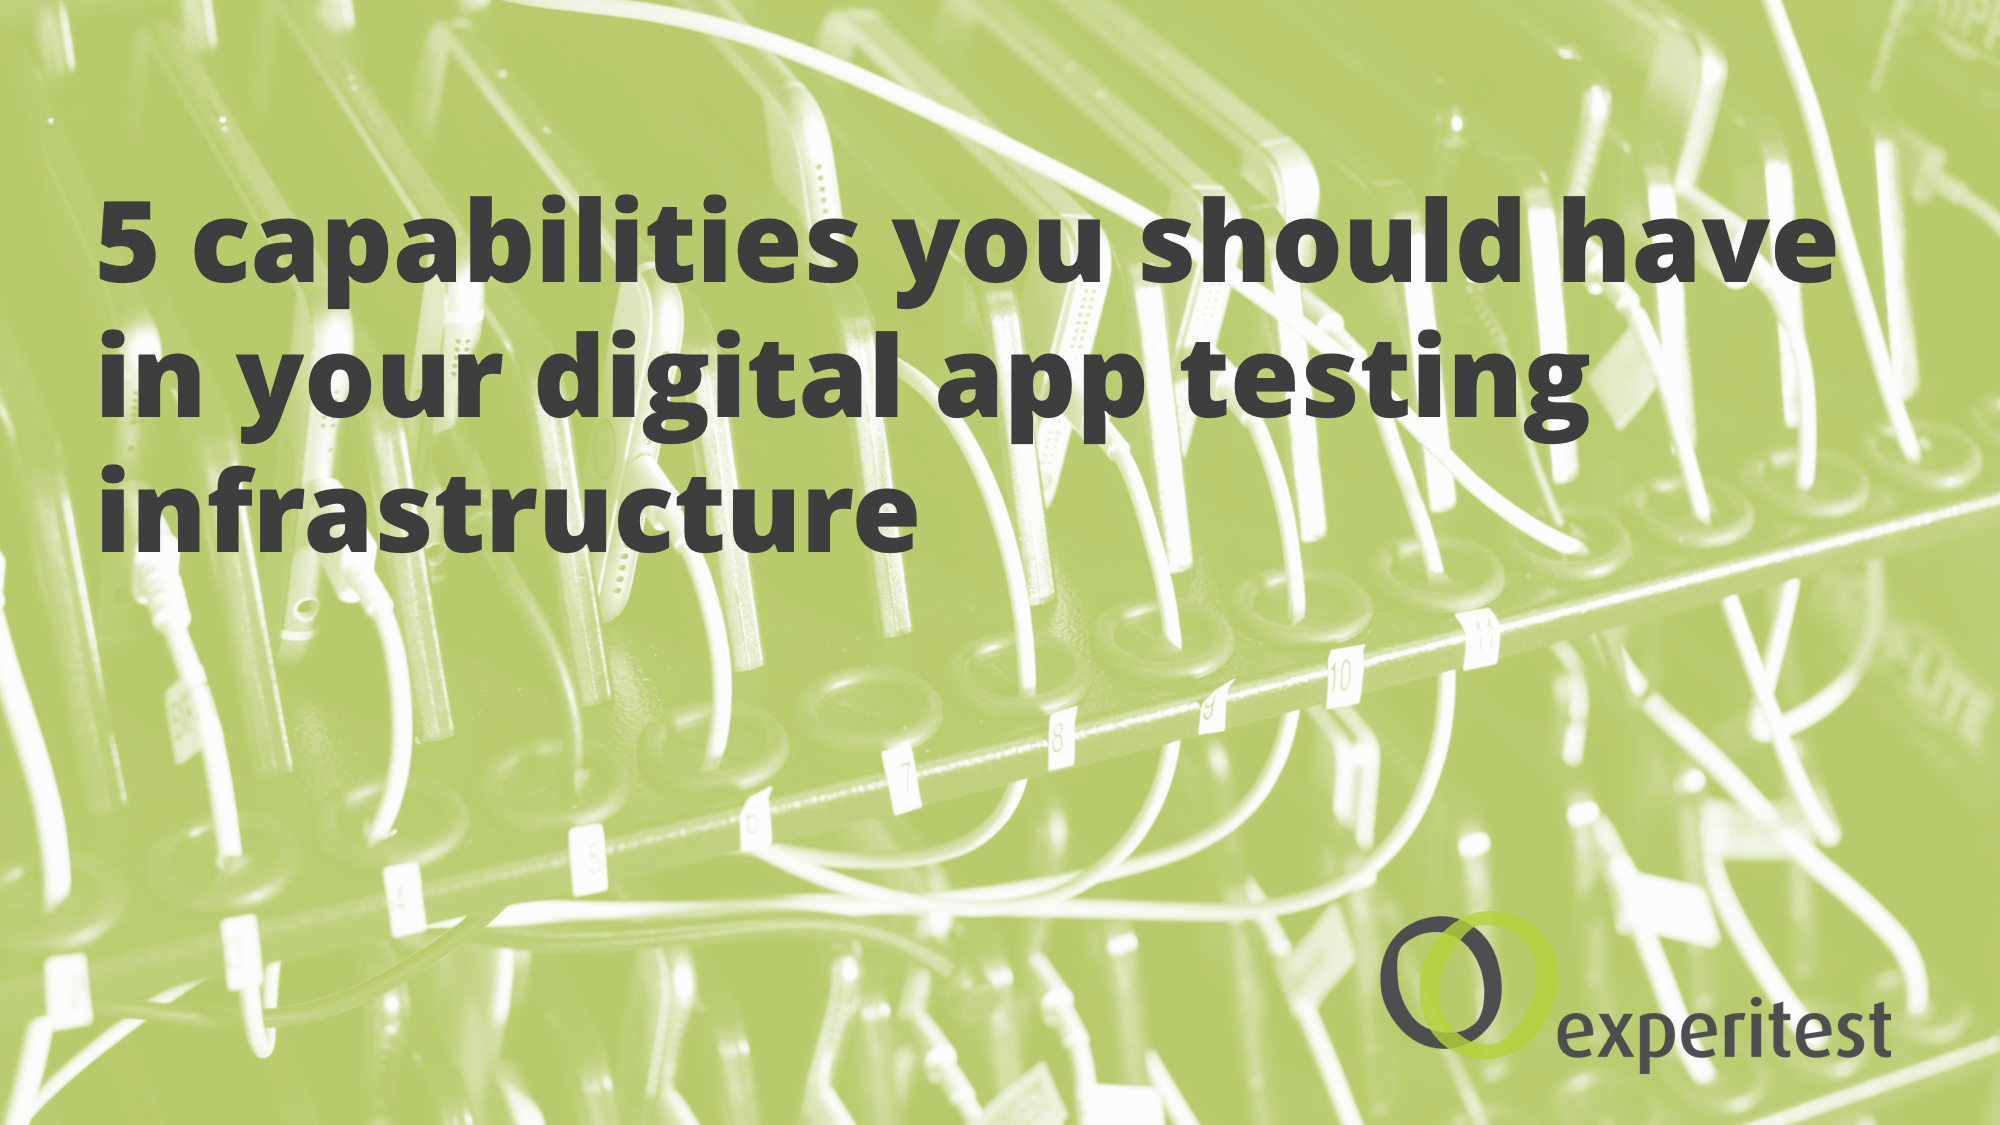 5 capabilities you should have in your digital app testing infrastructure